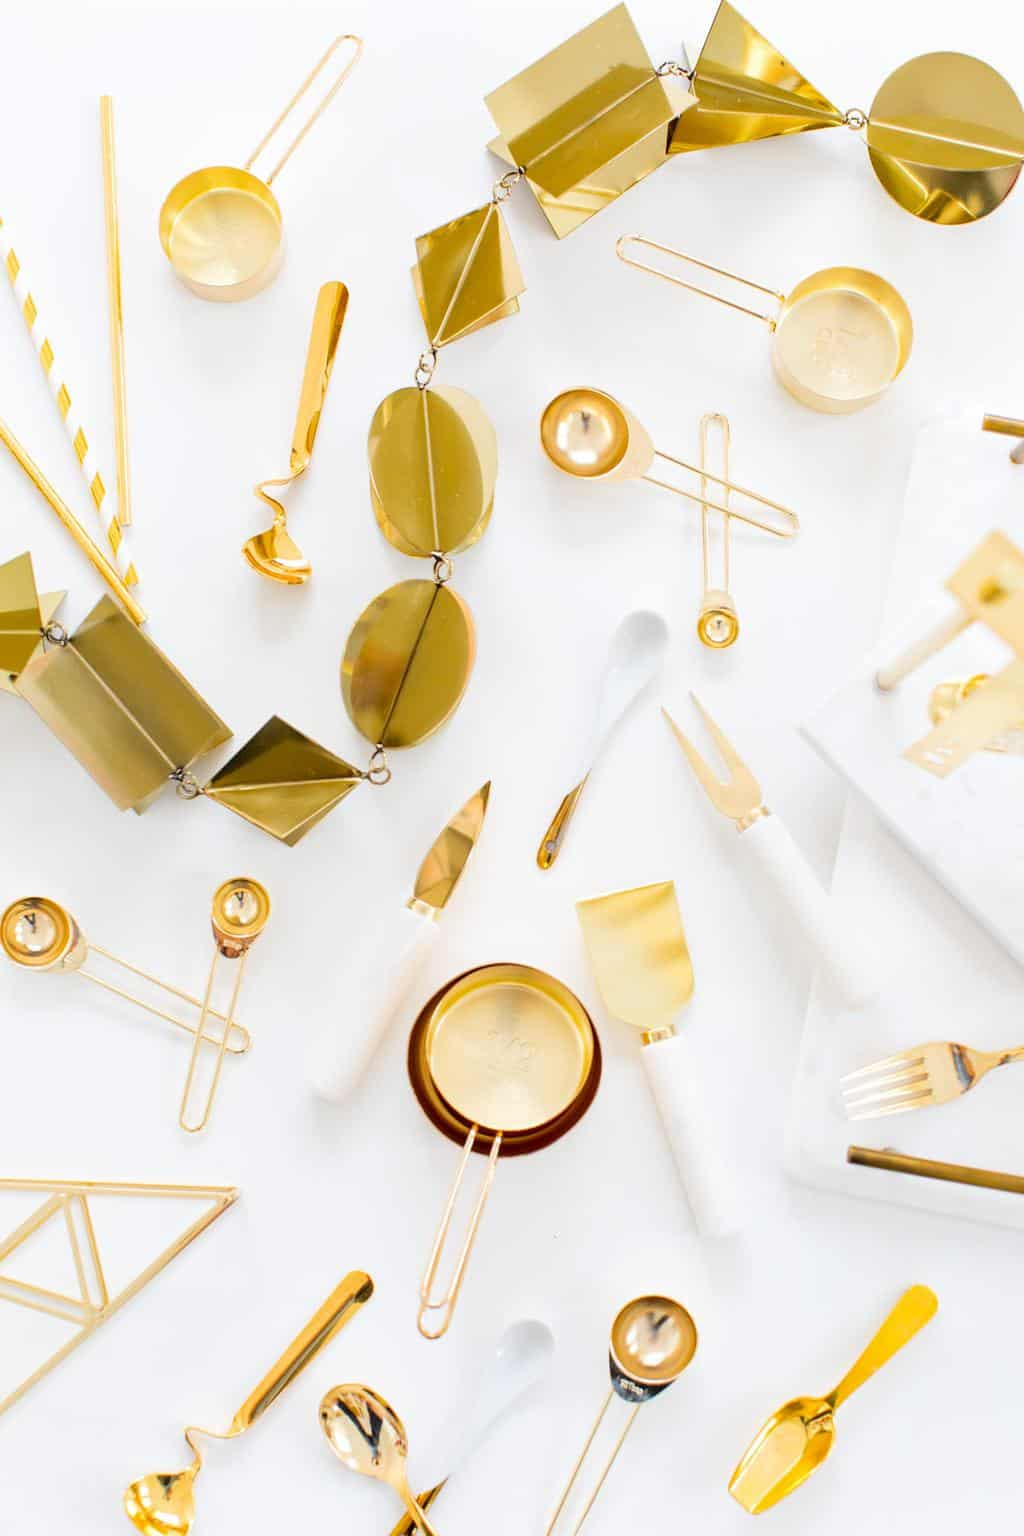 The Best Gold and Marble Entertaining Accessories according to Ashley Rose, writer of award winning DIY and entertaining blog, Sugar & Cloth!